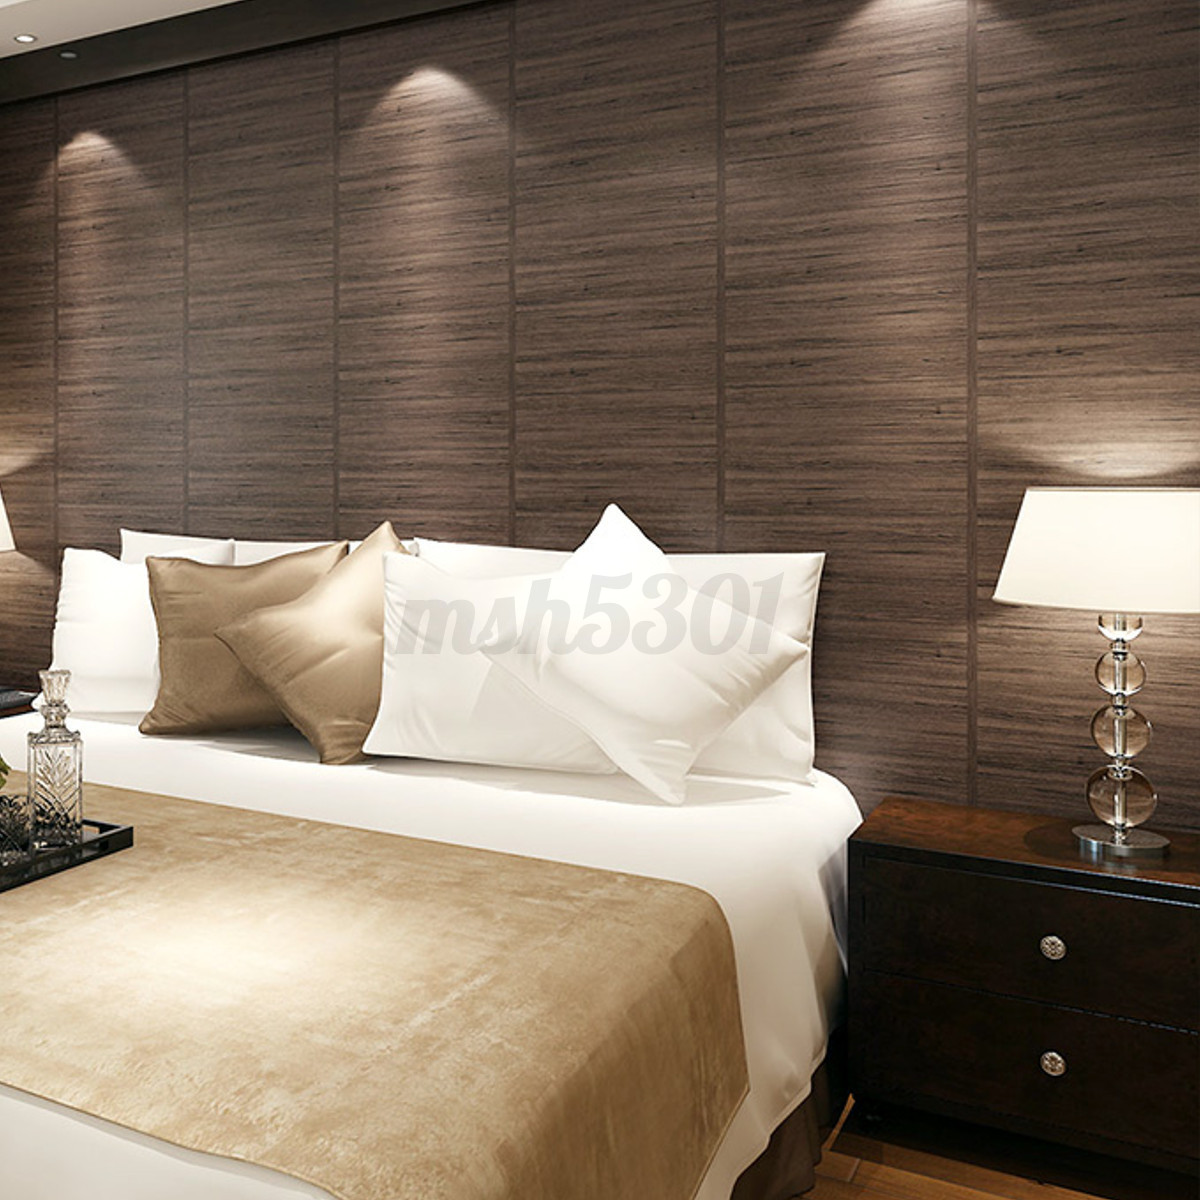 Roll wallcover 3d wood grain pattern damask wall for Damask wall mural